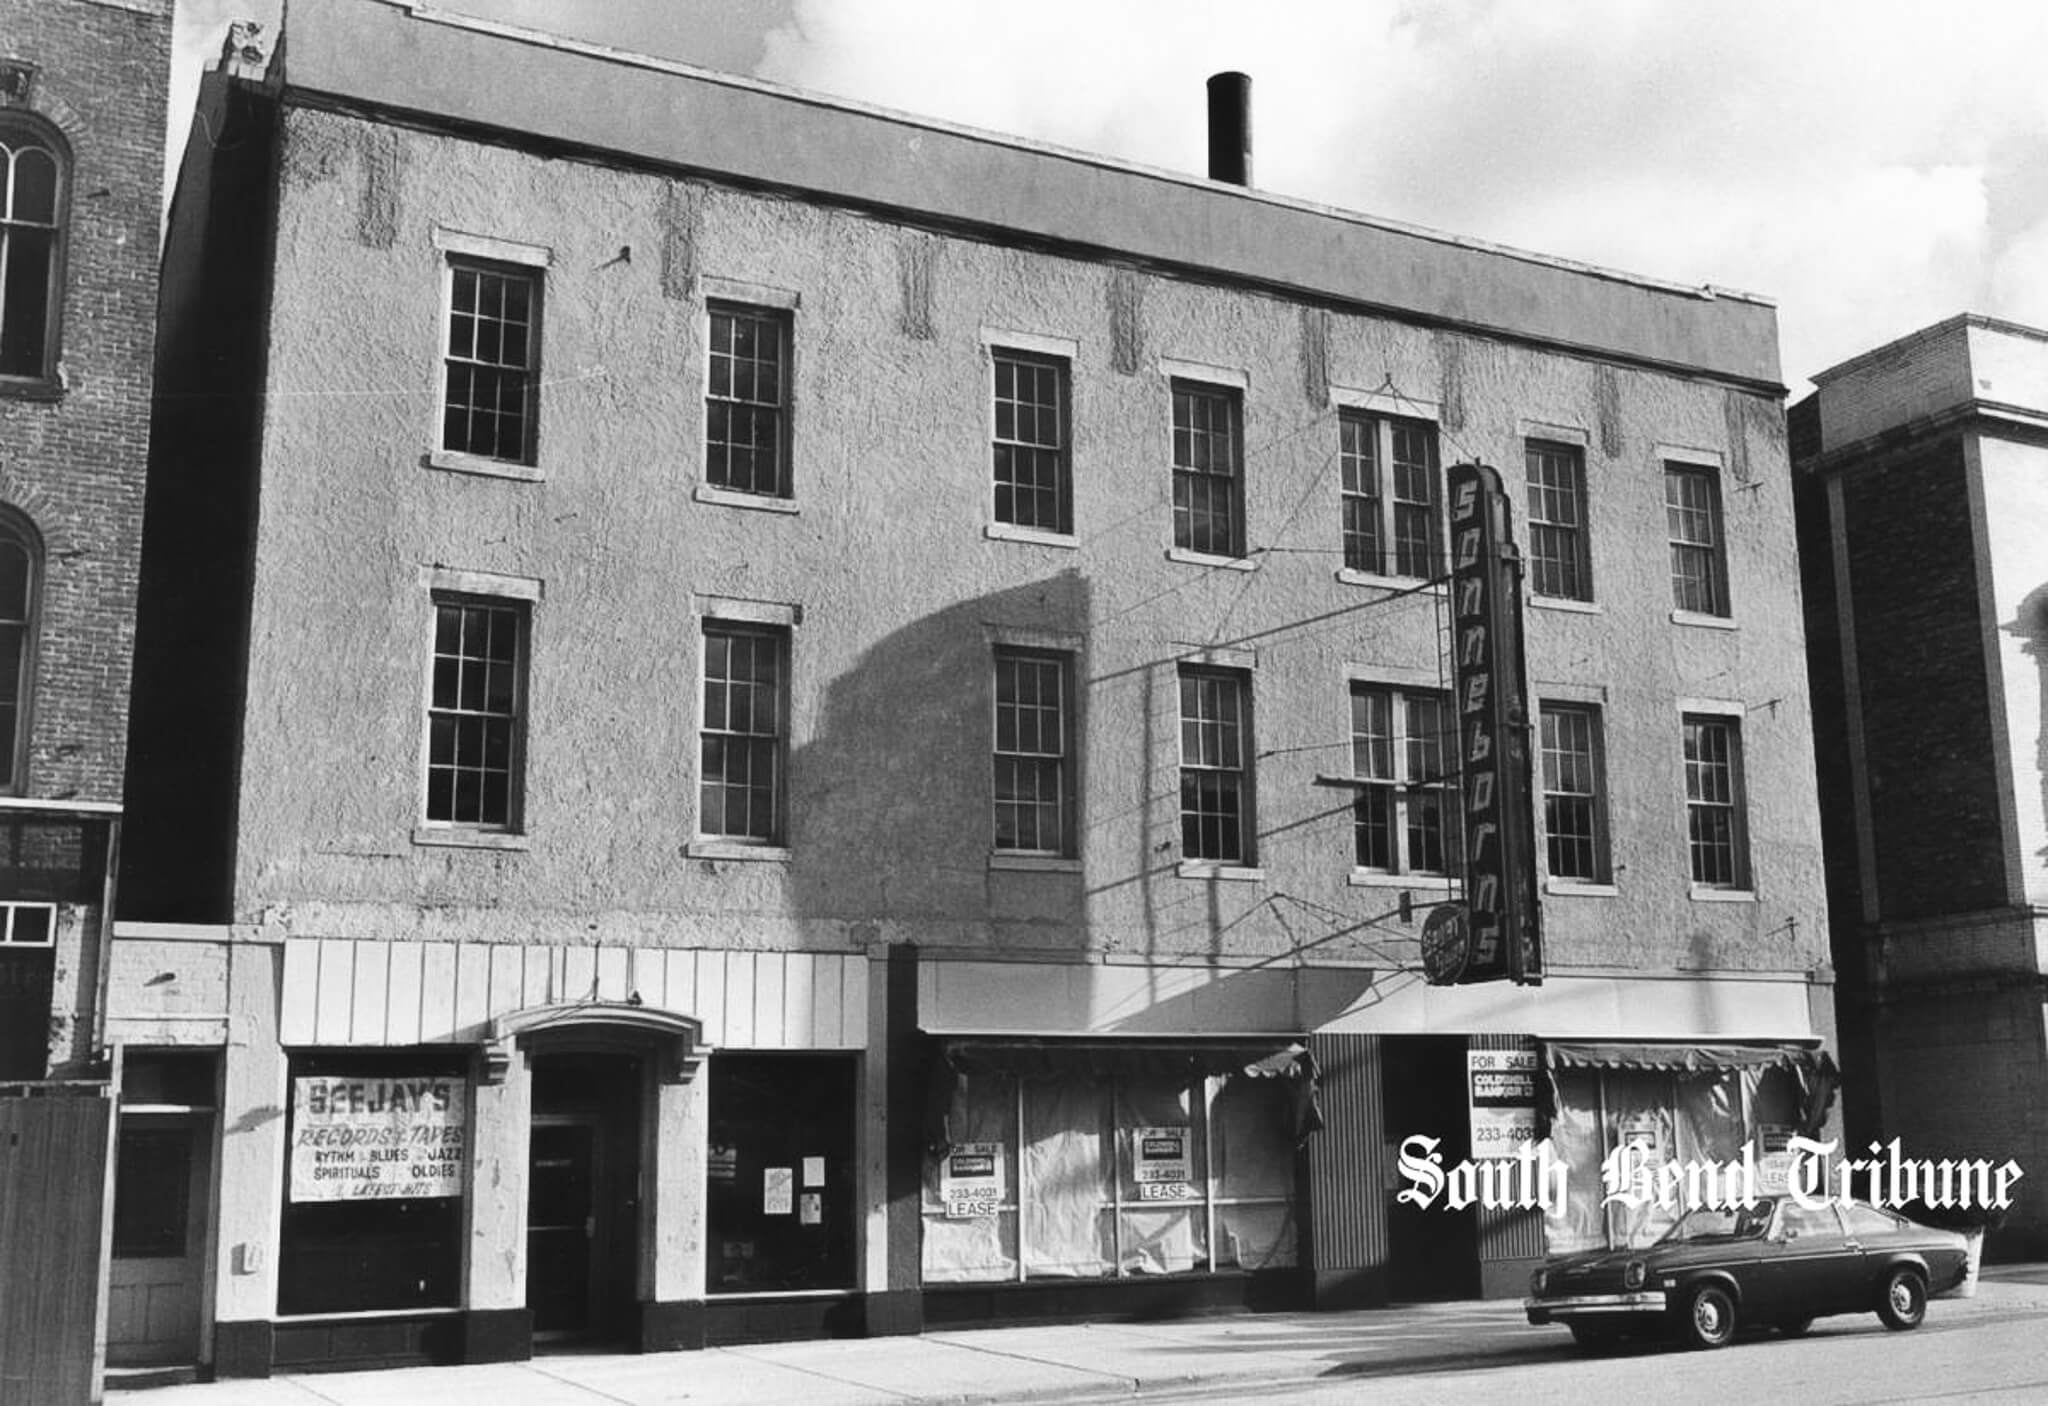 A South Bend Tribune archive photograph showing the building for sale after Sonneborn's closure.